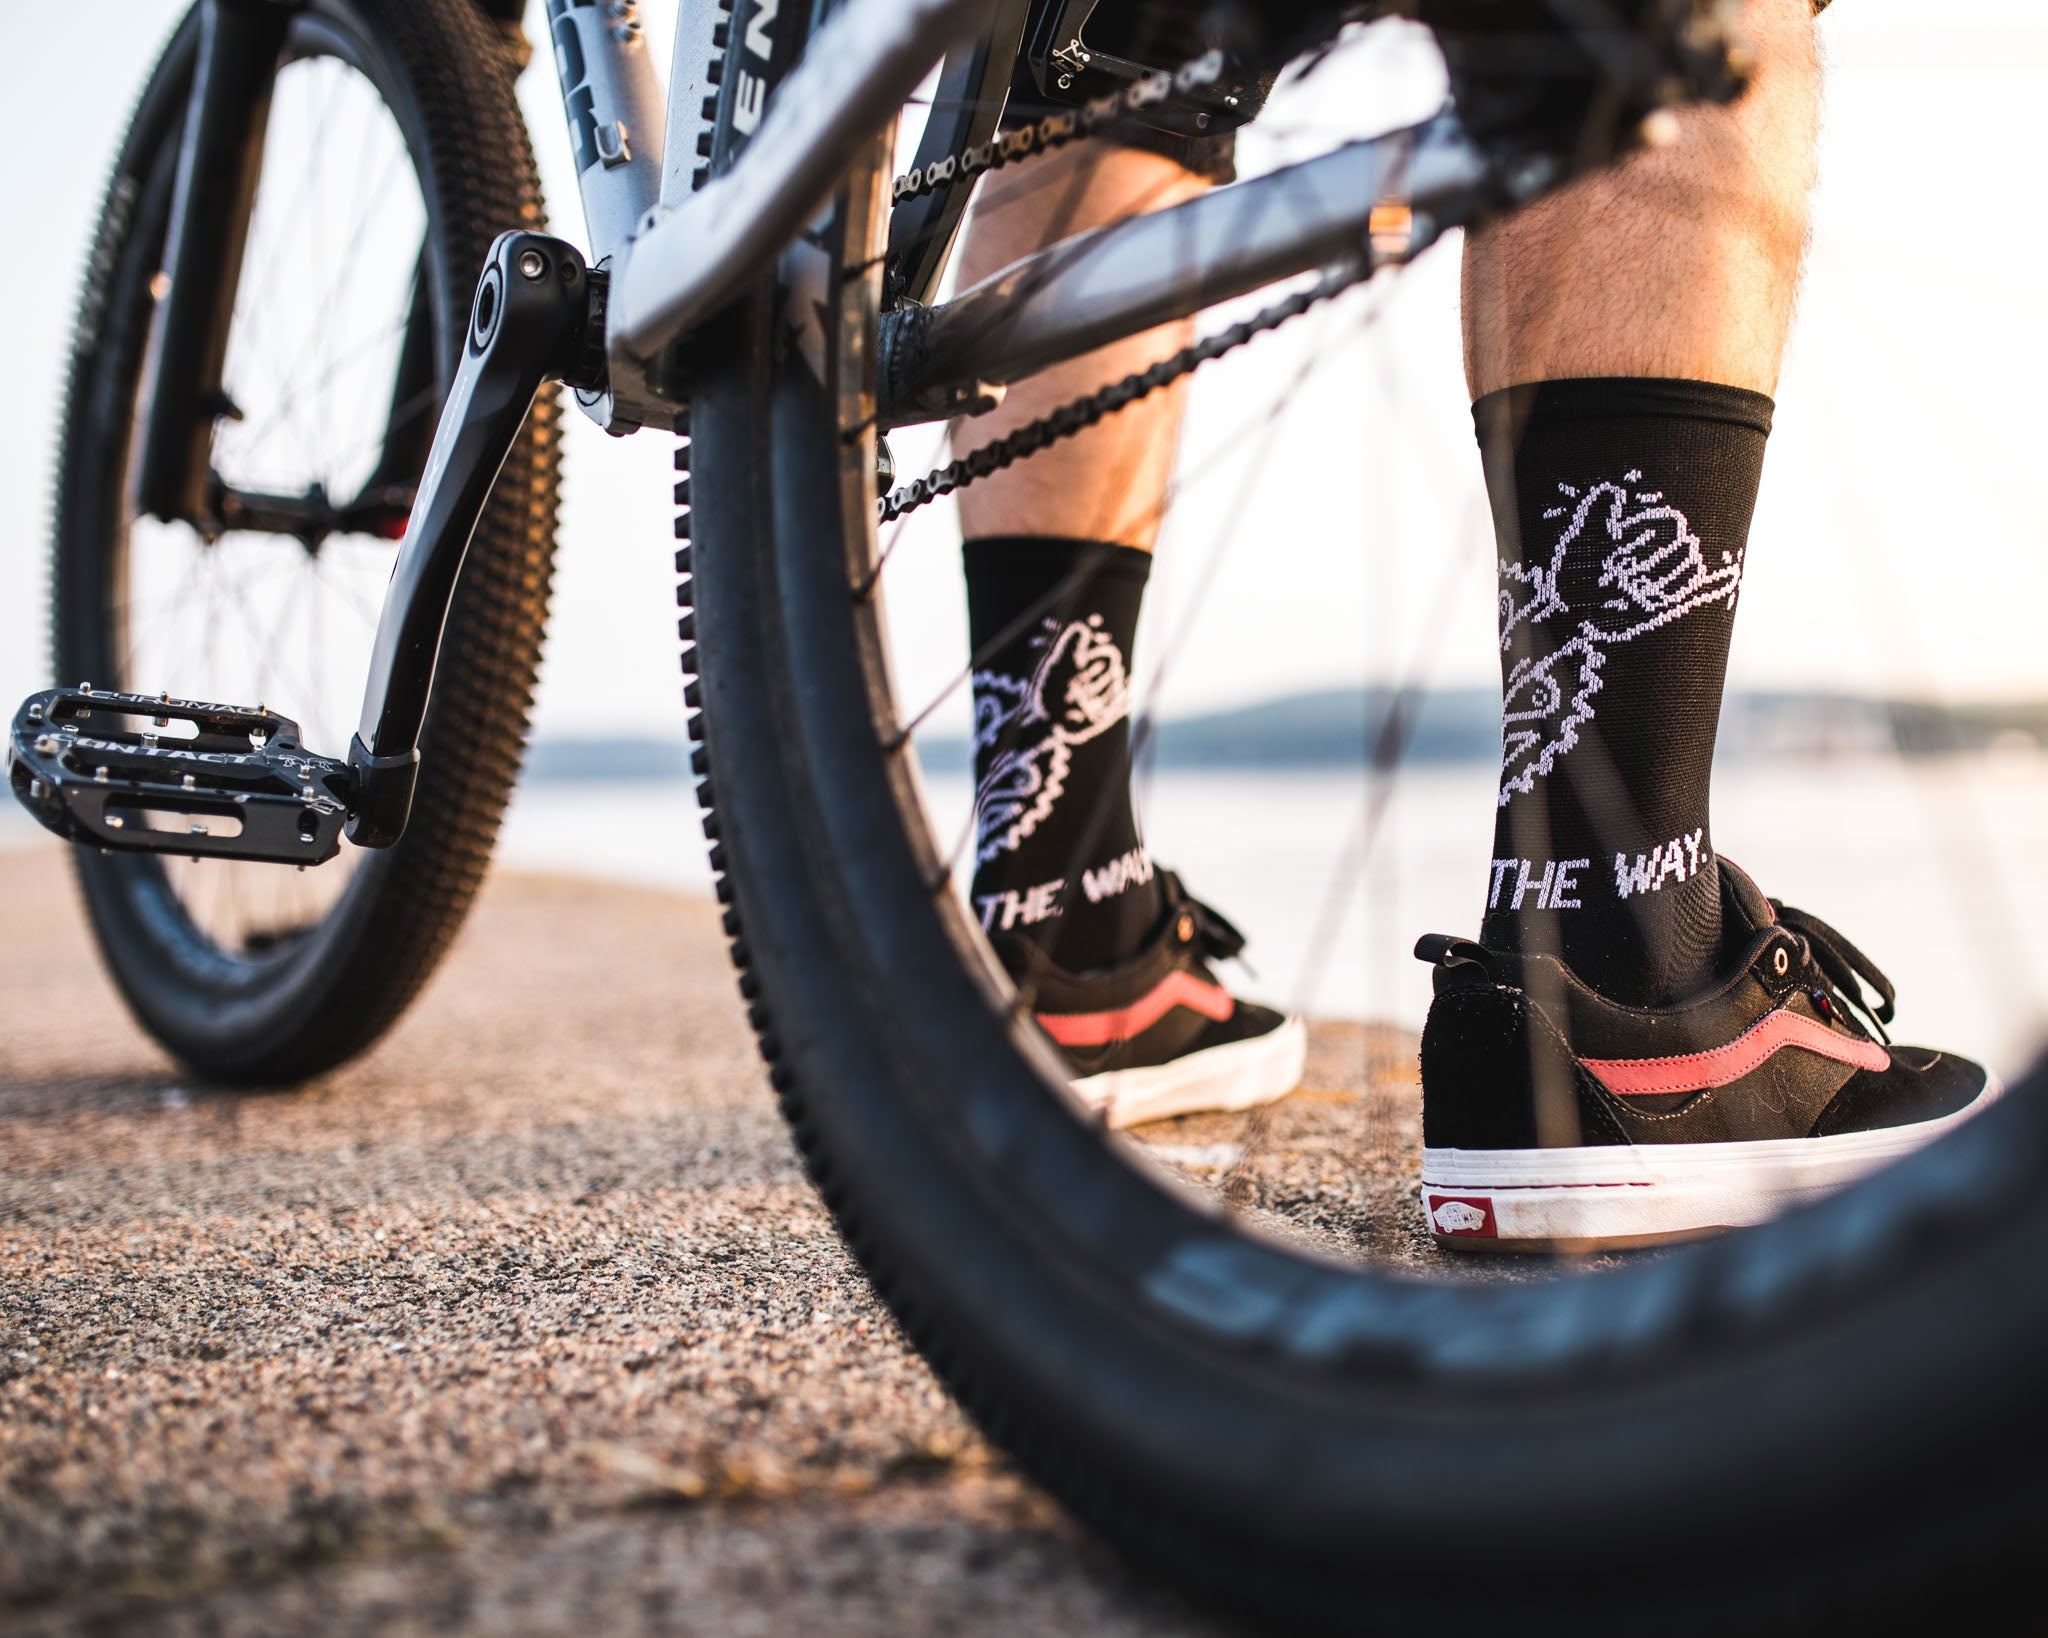 Hang loose crank socks